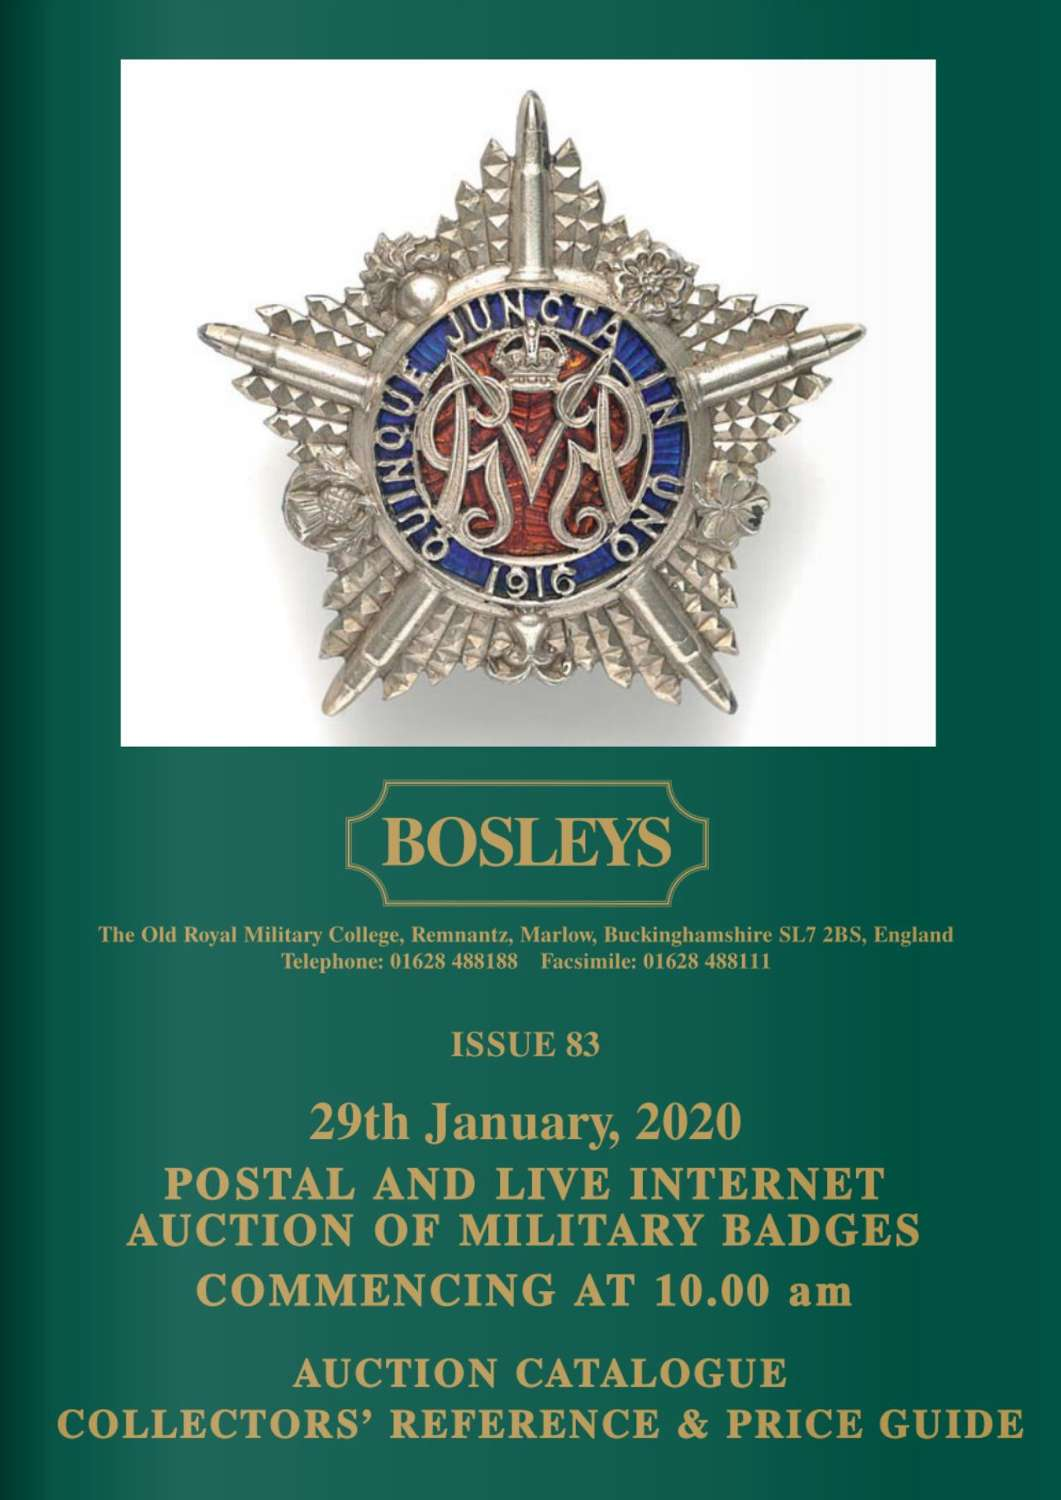 ORIGINAL MILITARY BADGES, TITLES & FORMATION SIGNS JANUARY 2020